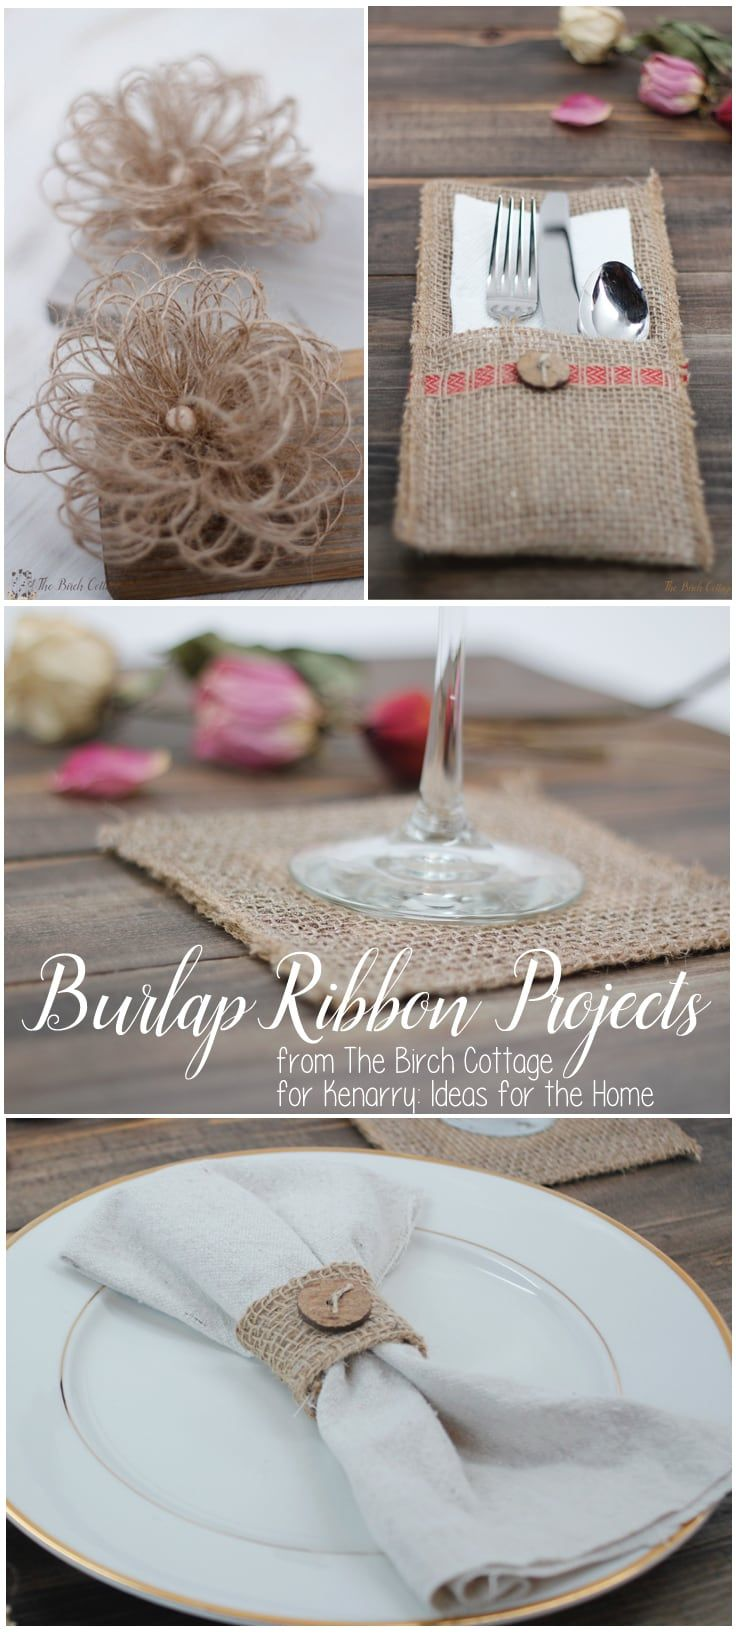 Learn To Make Burlap Coasters From Burlap Ribbon Decor Projects